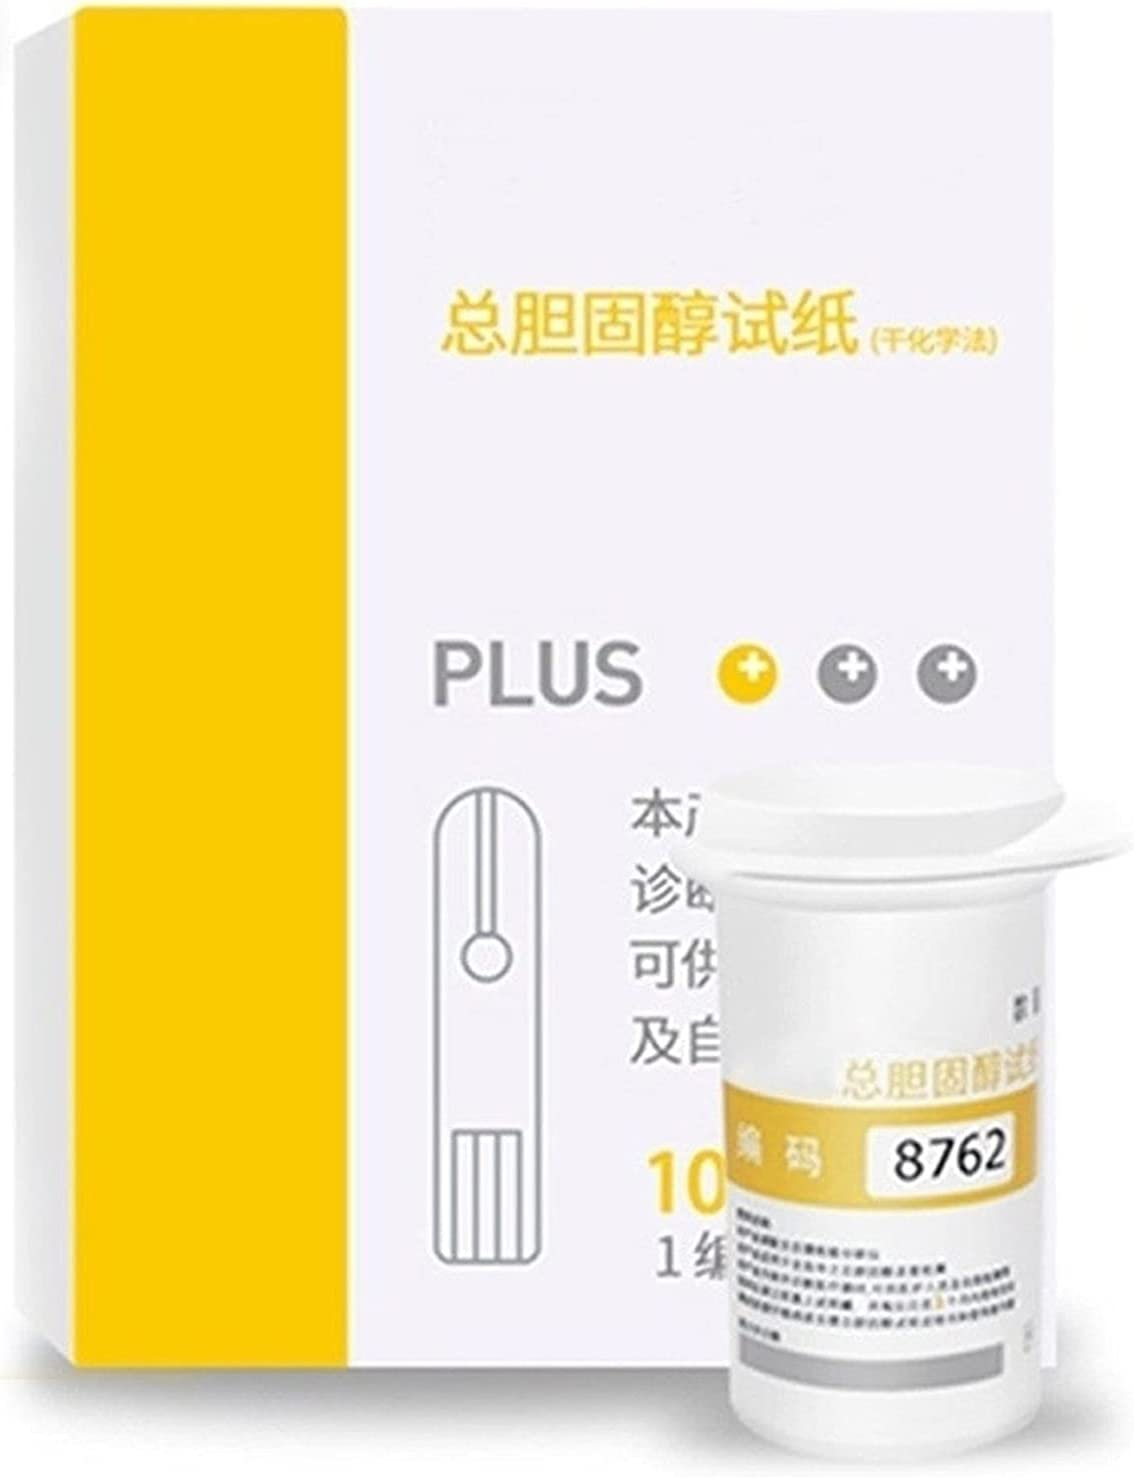 HTTDD 3 in 1 Blood Glucose Uric Multifunctional Many Charlotte Mall popular brands 3-in-1 Aci Meter